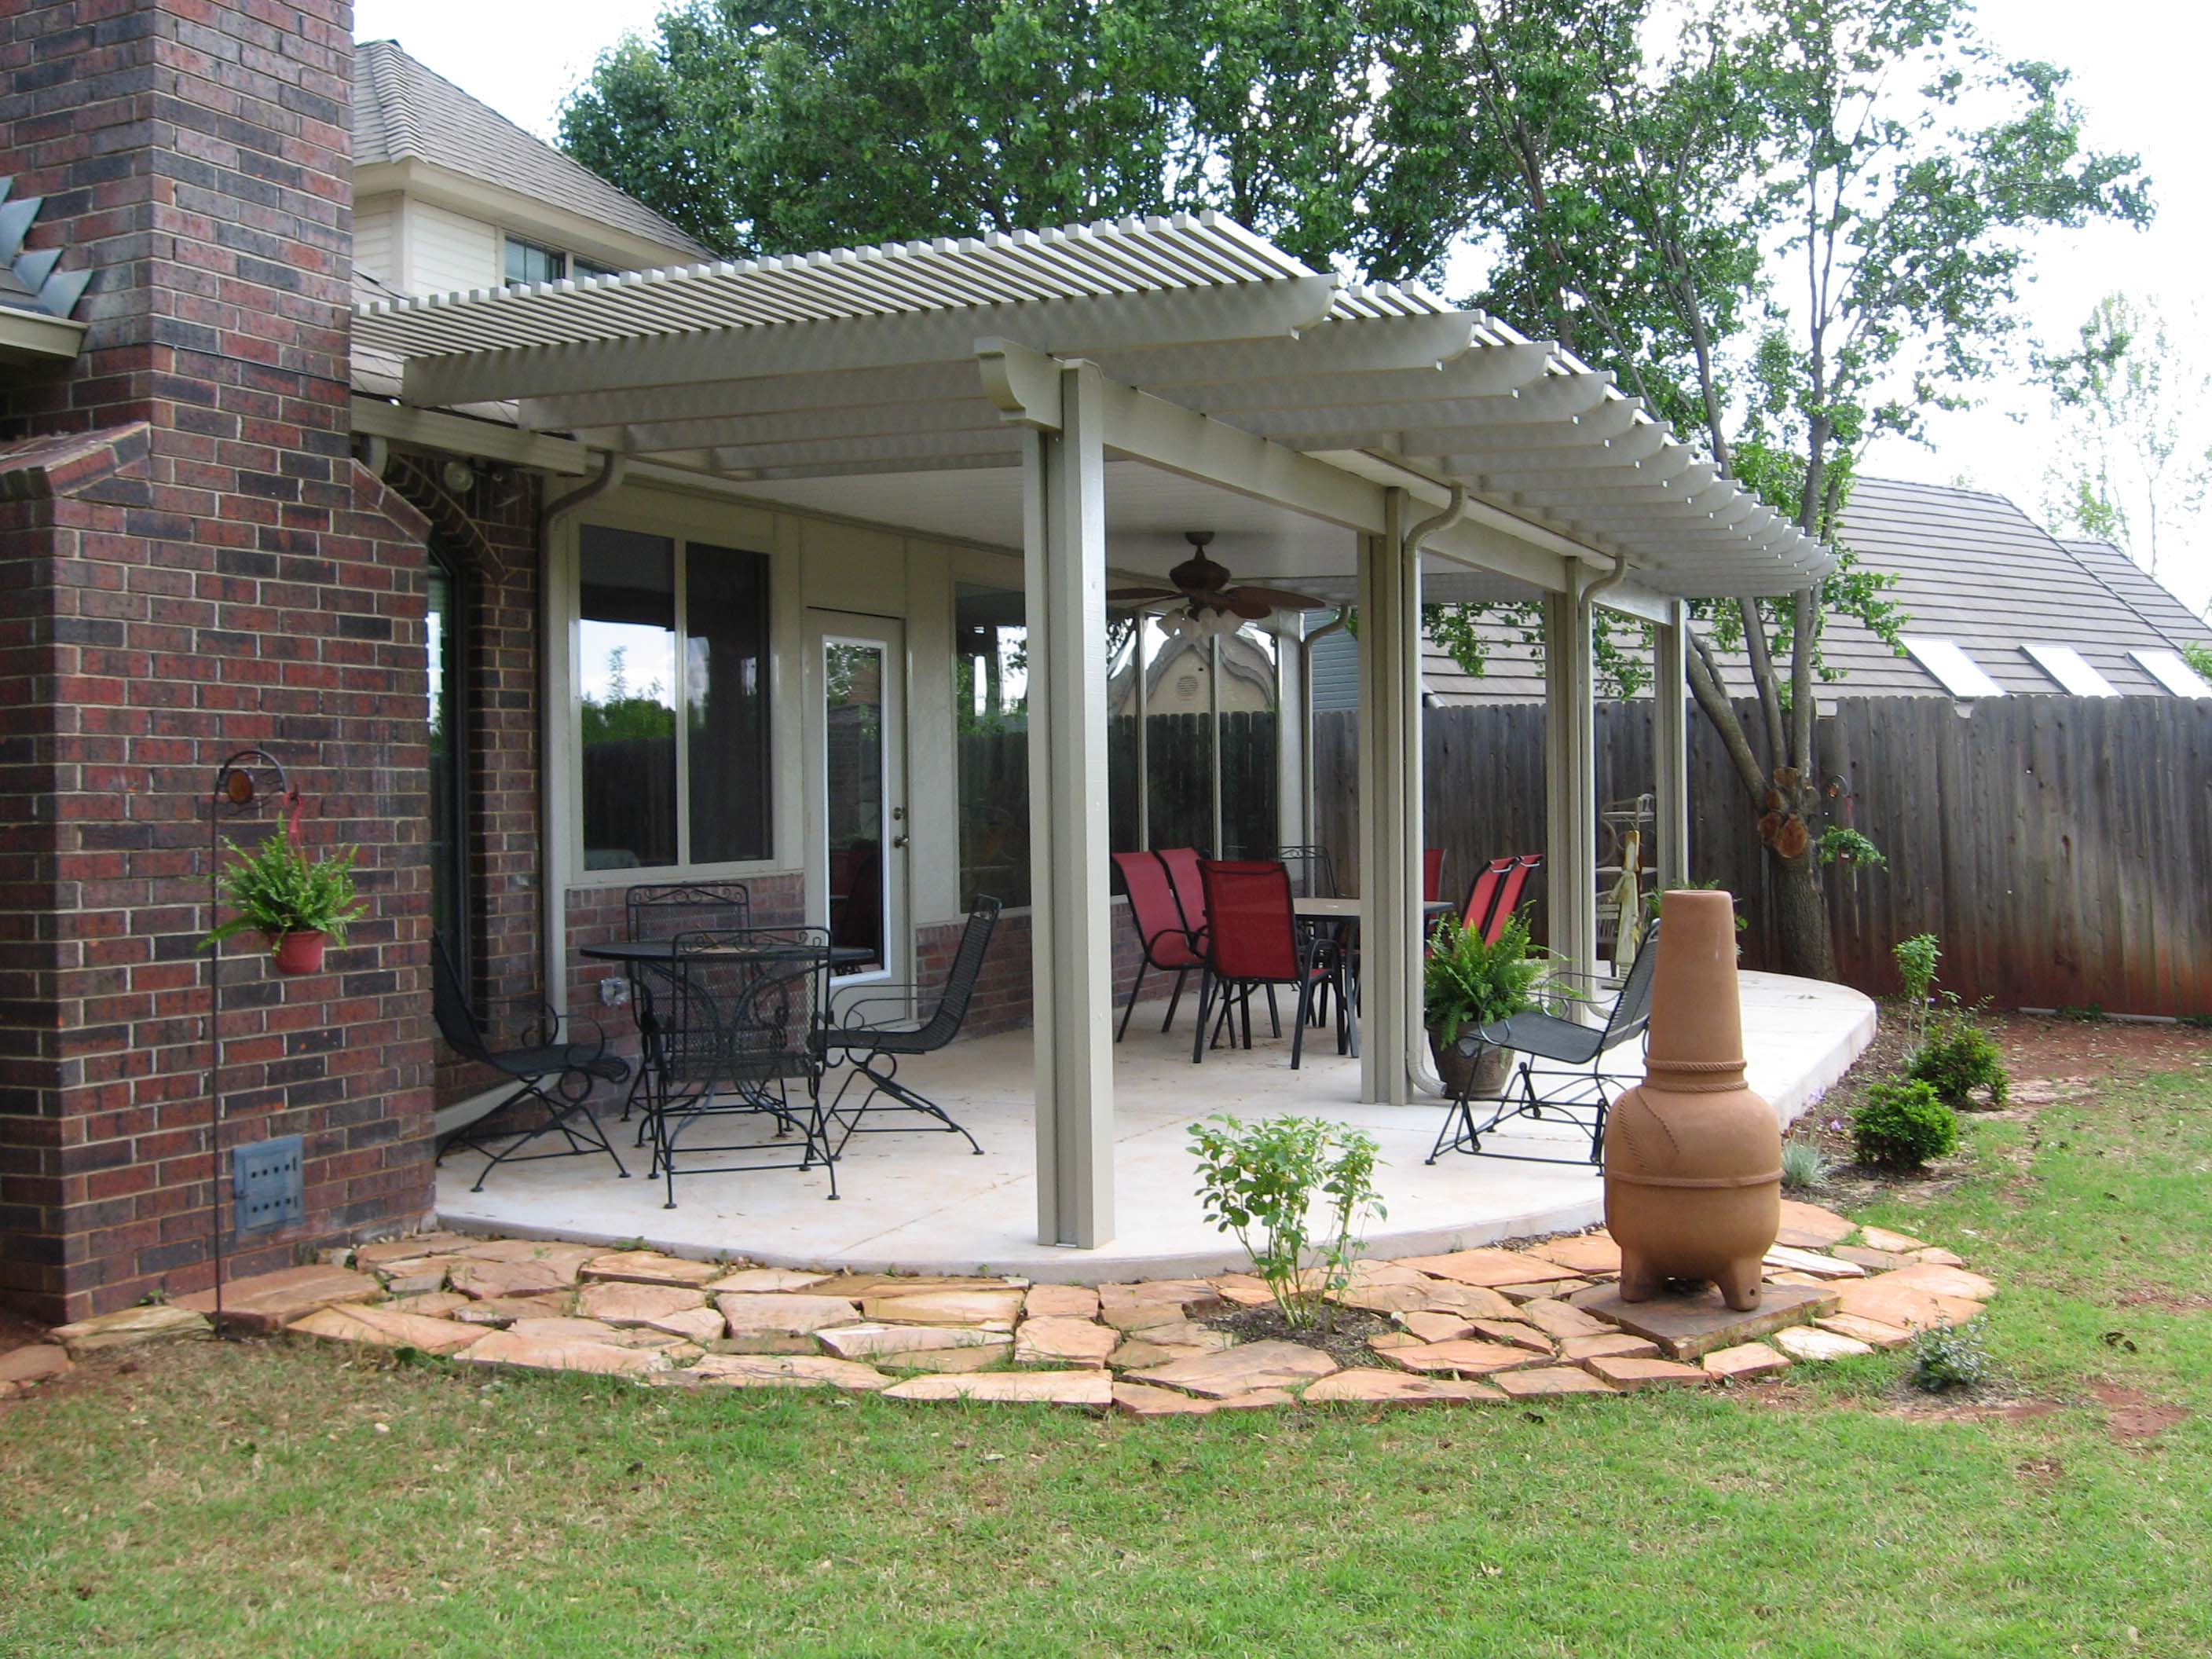 Outdoor decor 20 lovely pergola ideas style motivation - Eigentijds pergola design ...